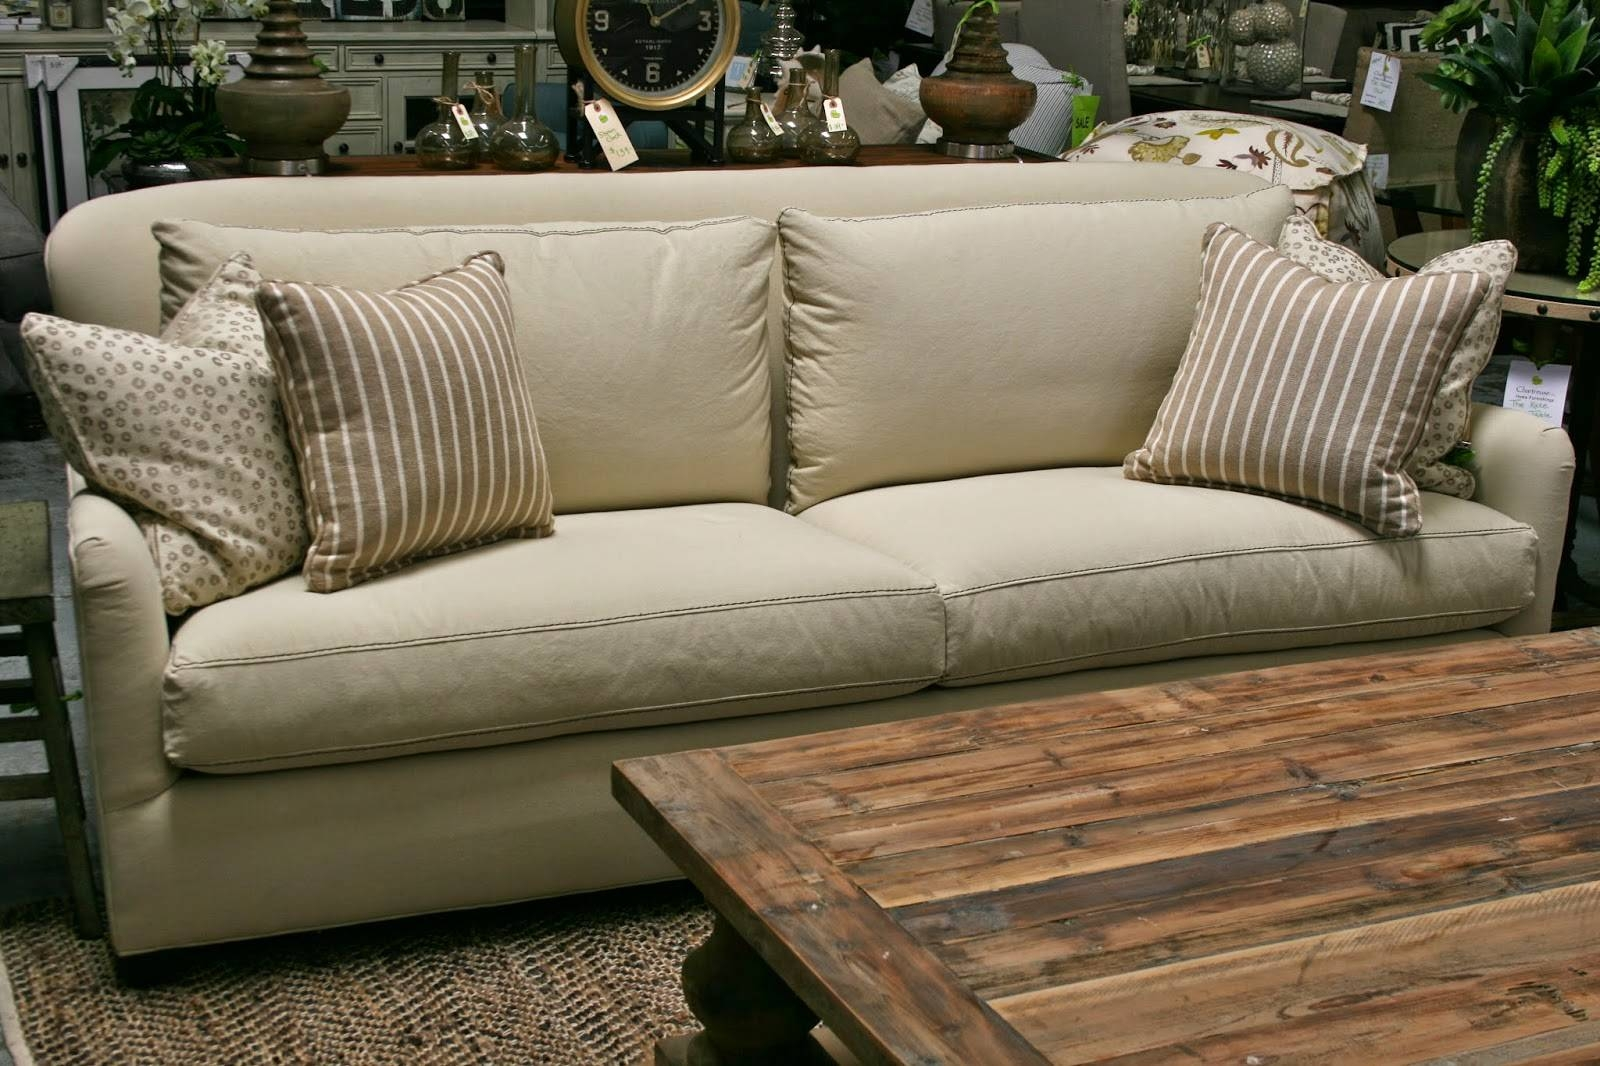 Chartreuse Home Furnishings: So Many Sofas! with regard to Chartreuse Sofas (Image 3 of 15)